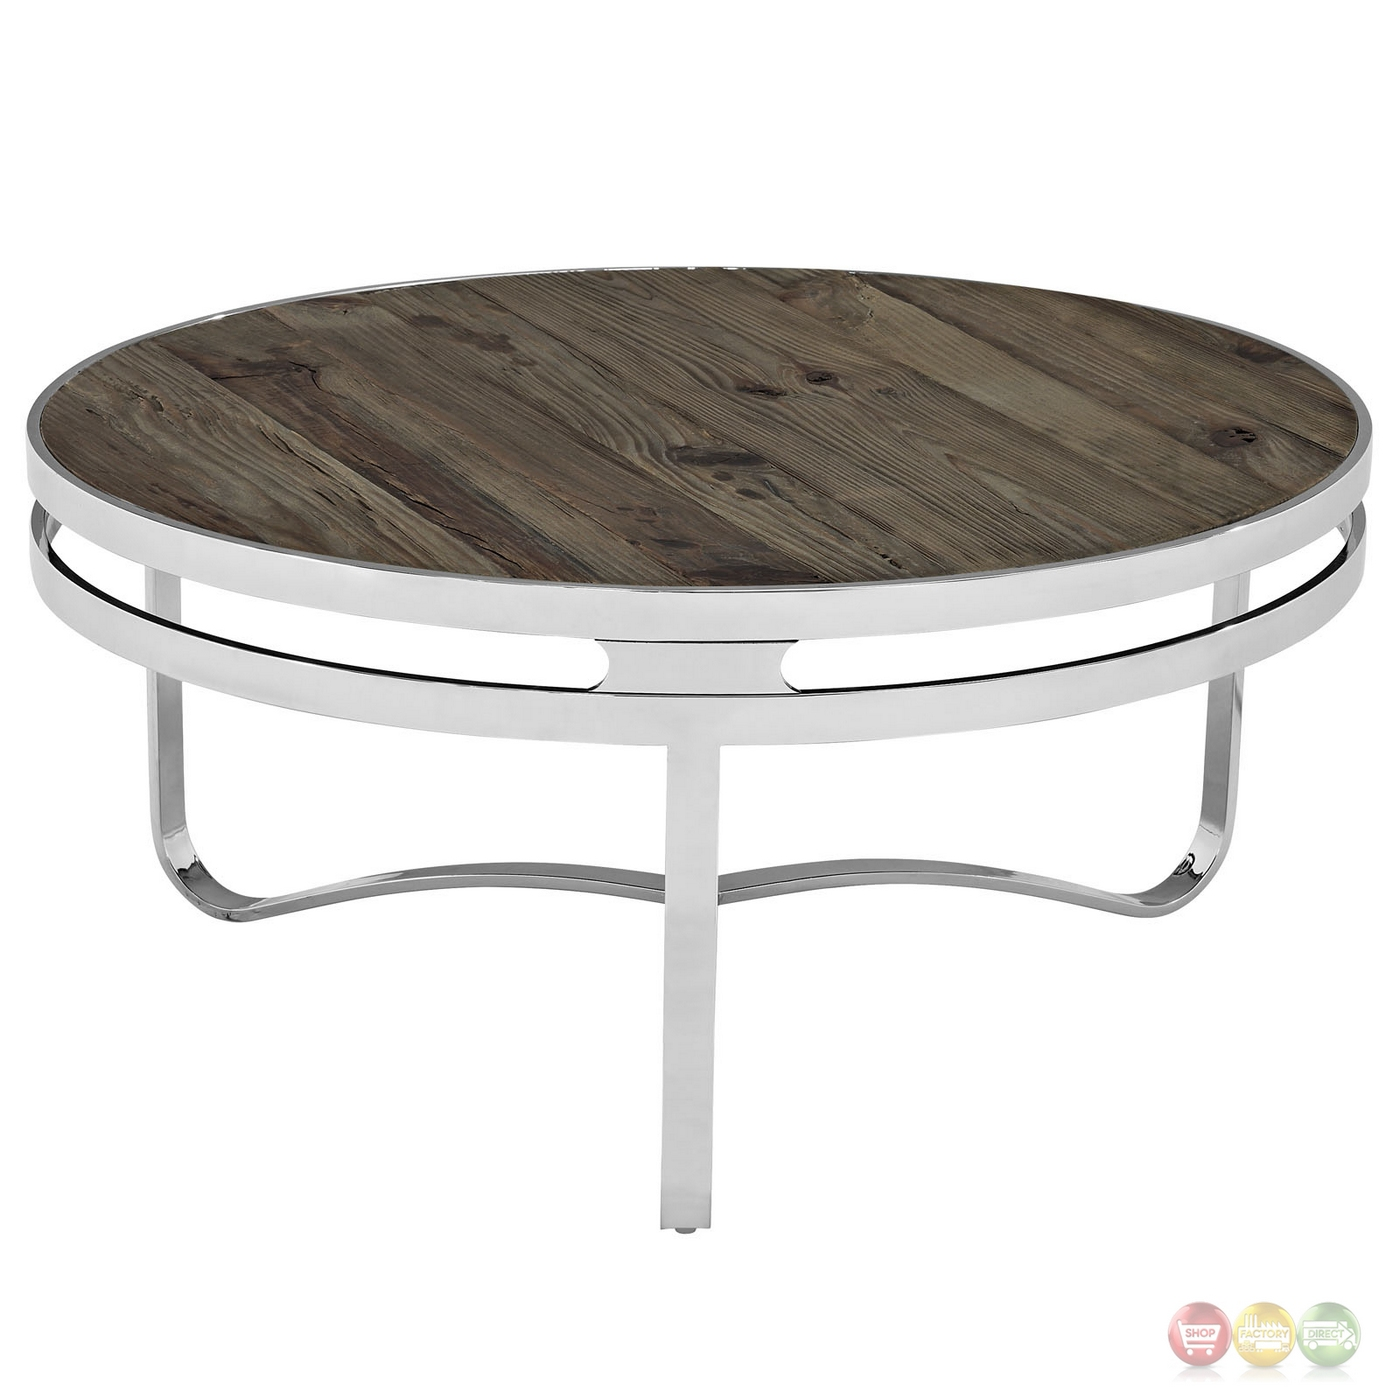 Modern Round Wooden Coffee Table 110: Modern Round Coffee Table